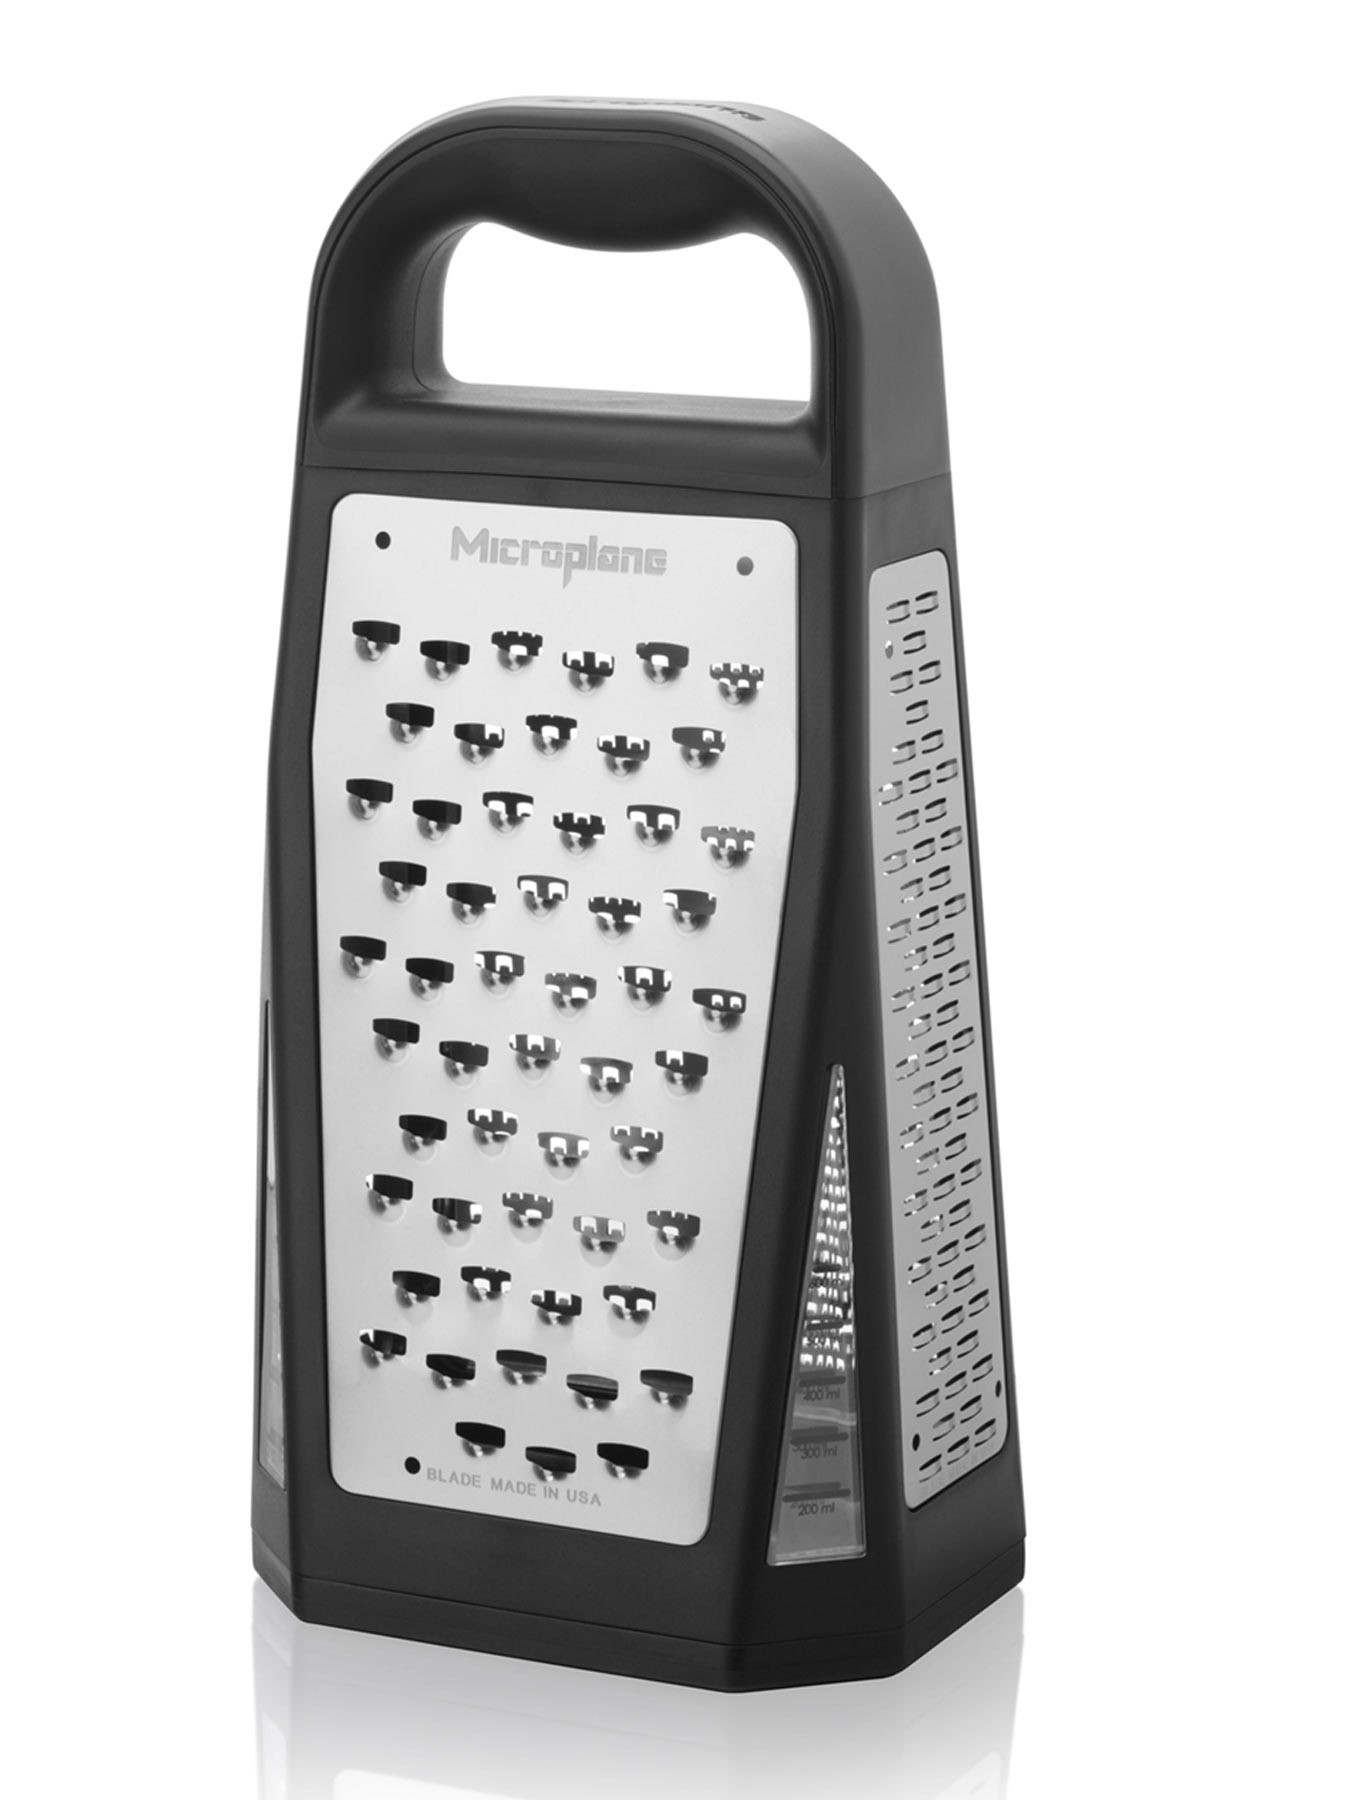 Microplane Specialty 34019 Turmreibe